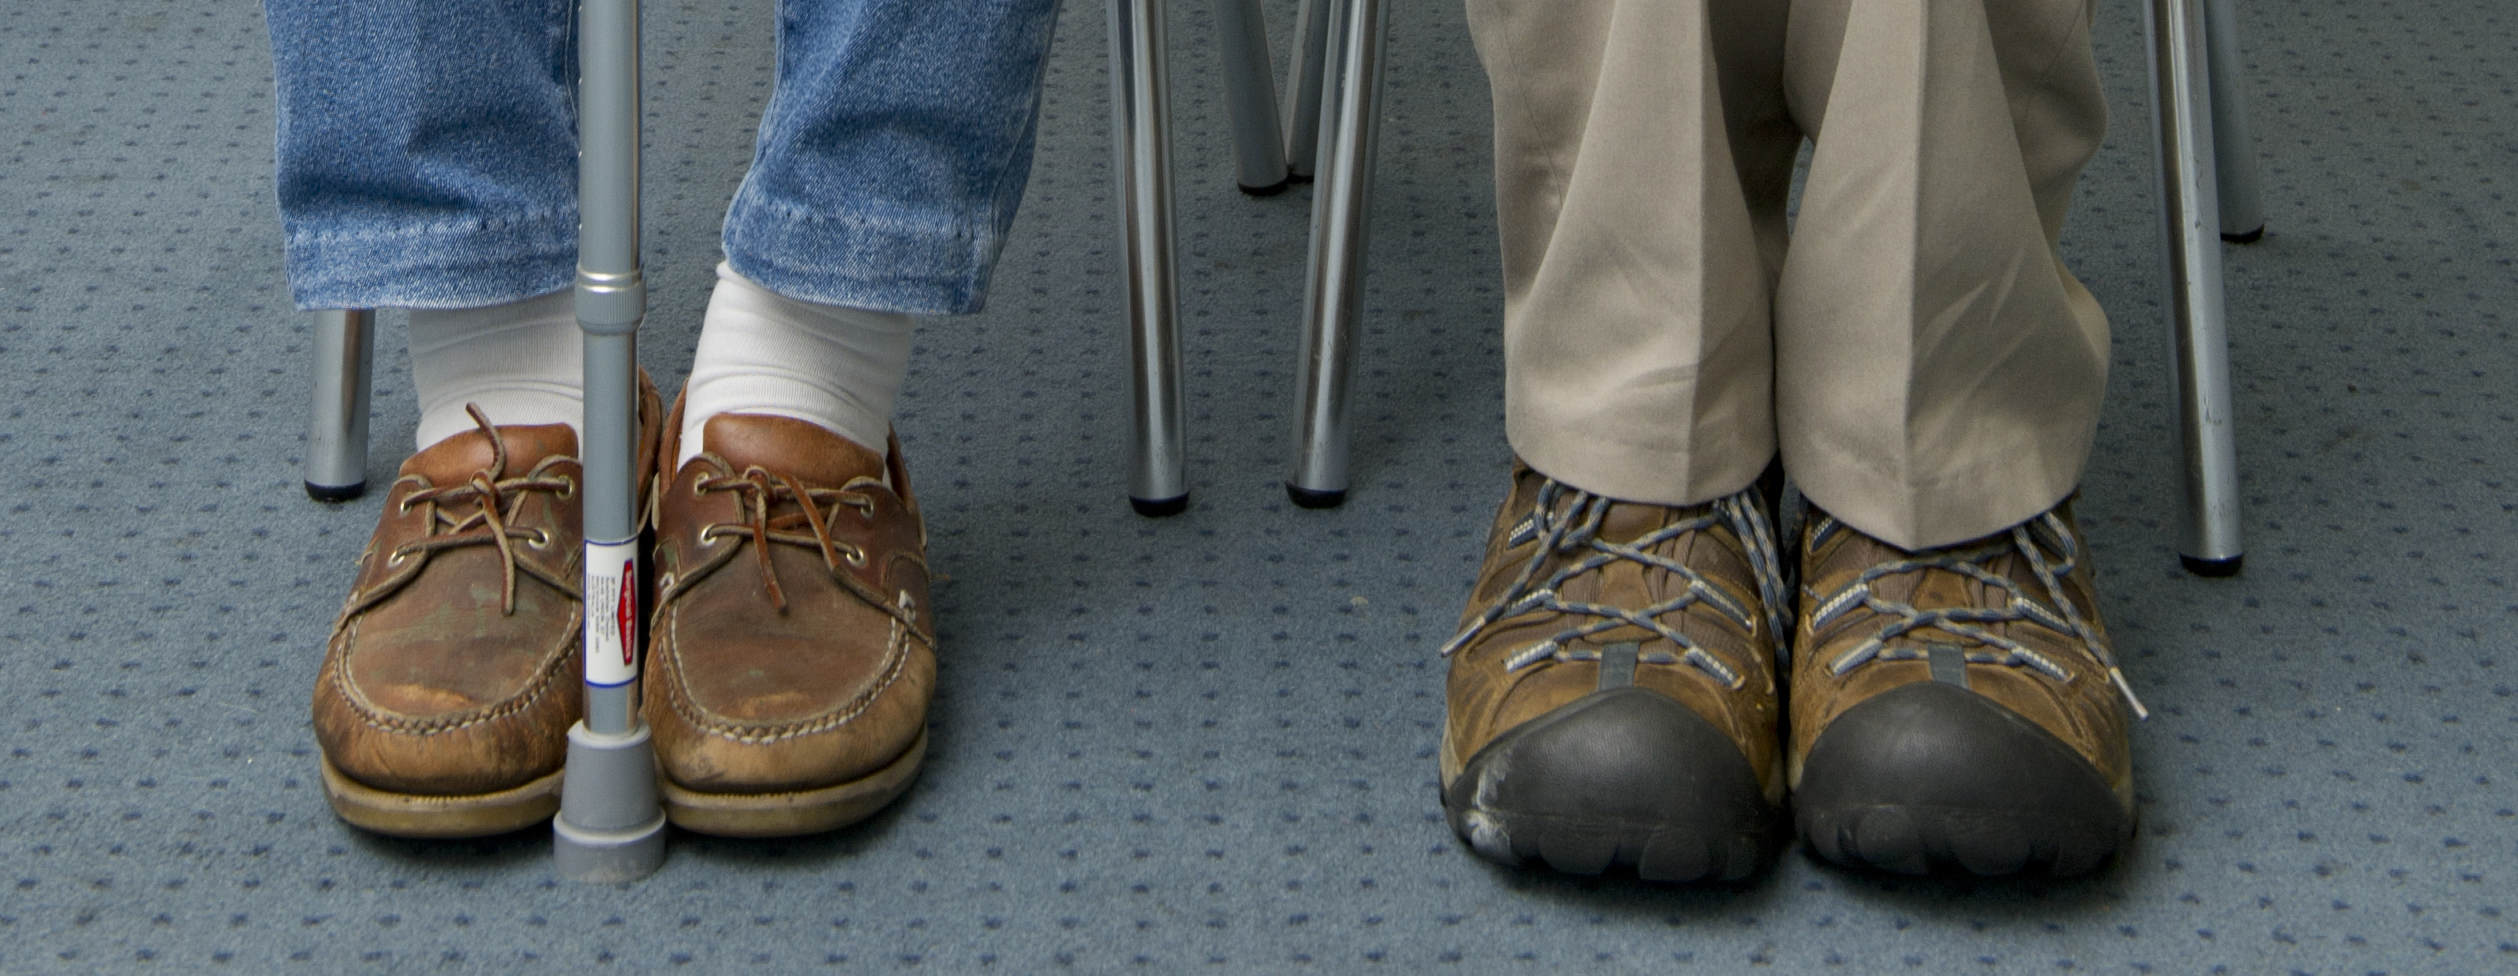 Feet of two elderly men